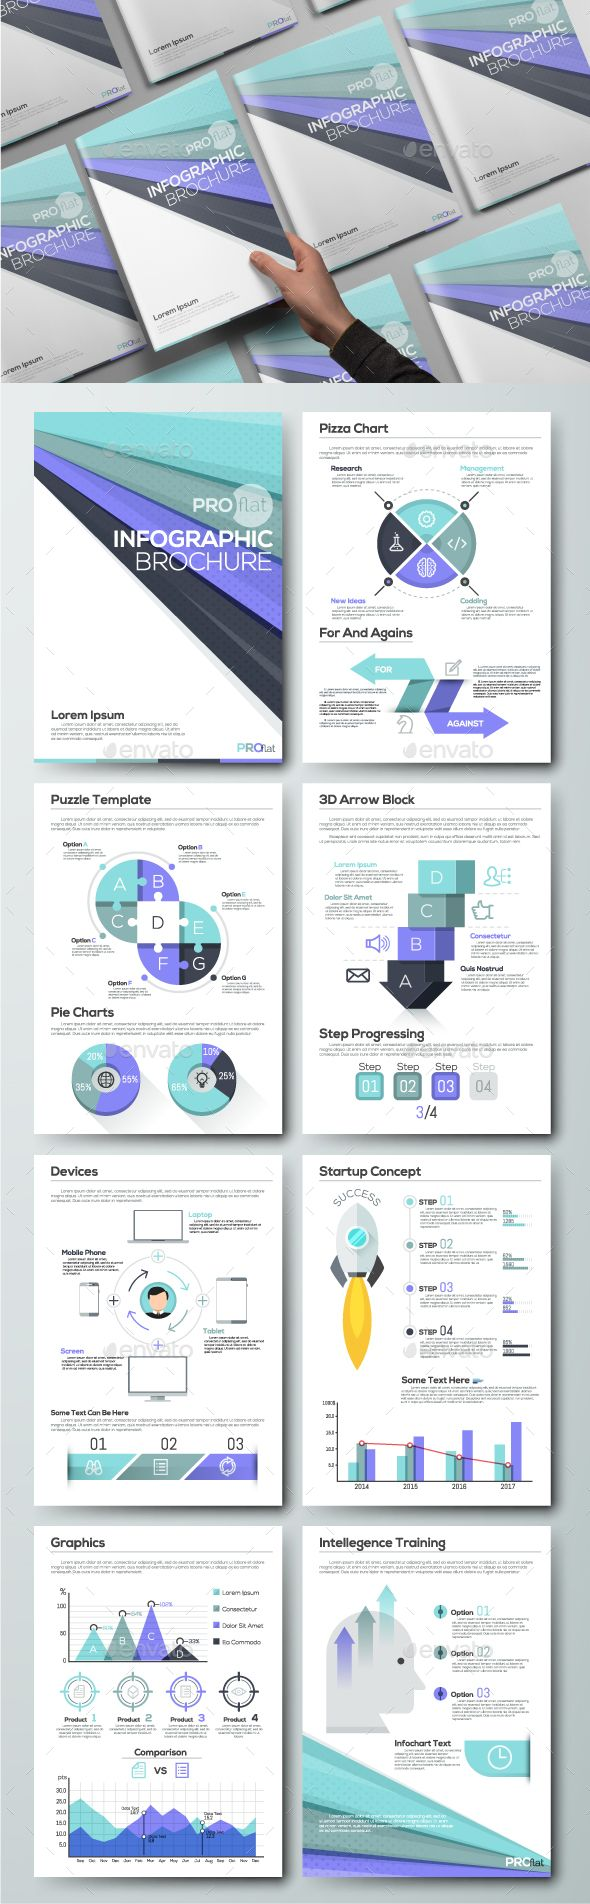 111 best Infographics Templates images on Pinterest | Infographic ...